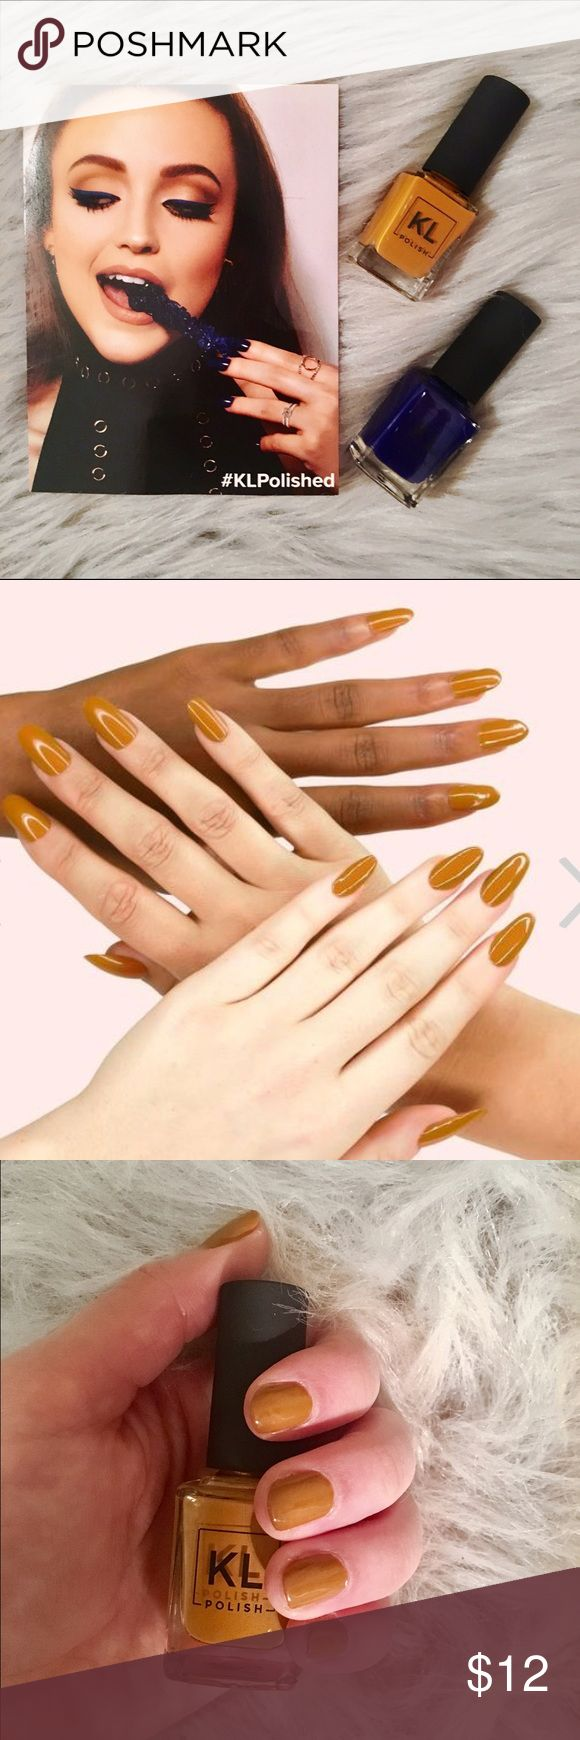 KL polish - Caramello This mustard-pumpkin shade is perfect for fall and winter!  Creme finish. Vegan. 5-free. SOLD OUT!! KL polish Other